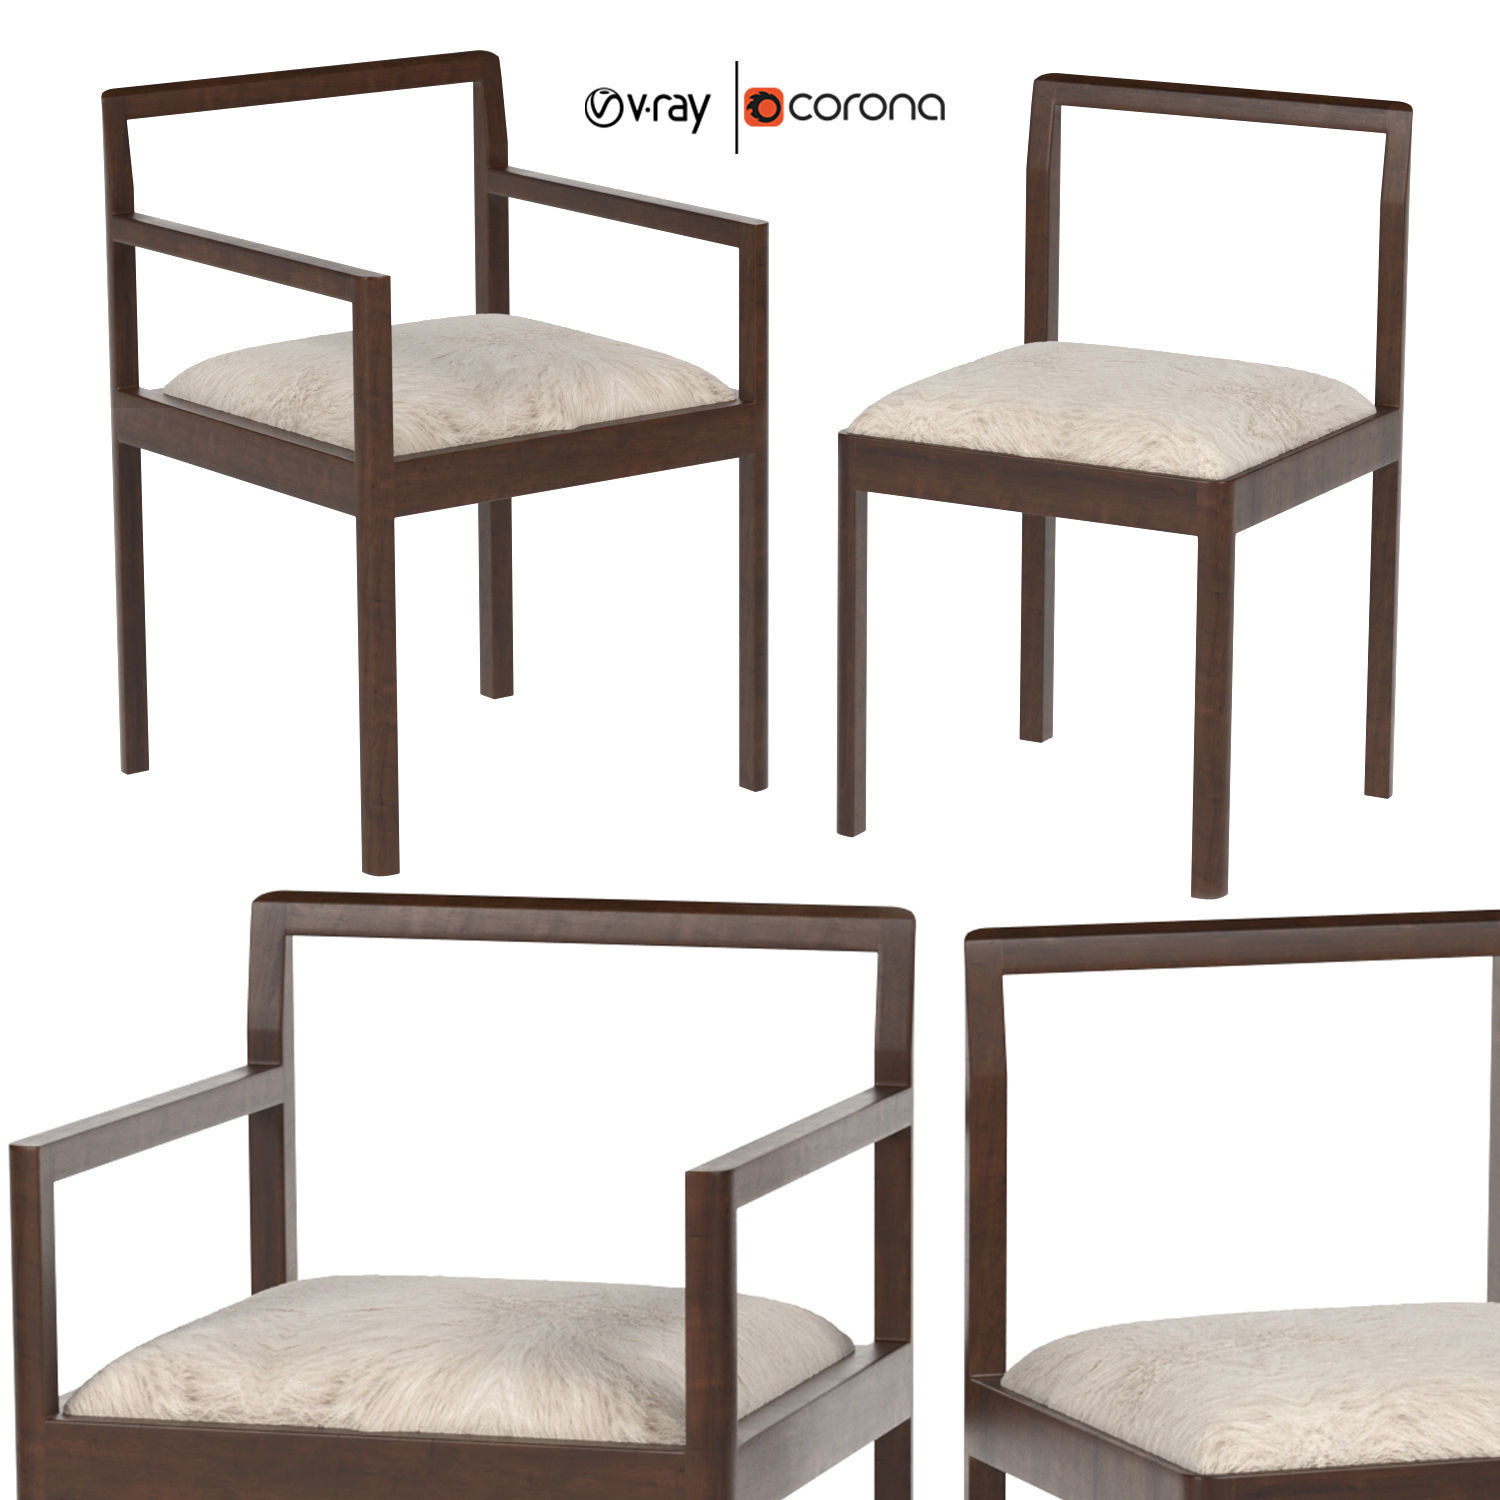 Densen armchair and dining chair 3D | CGTrader